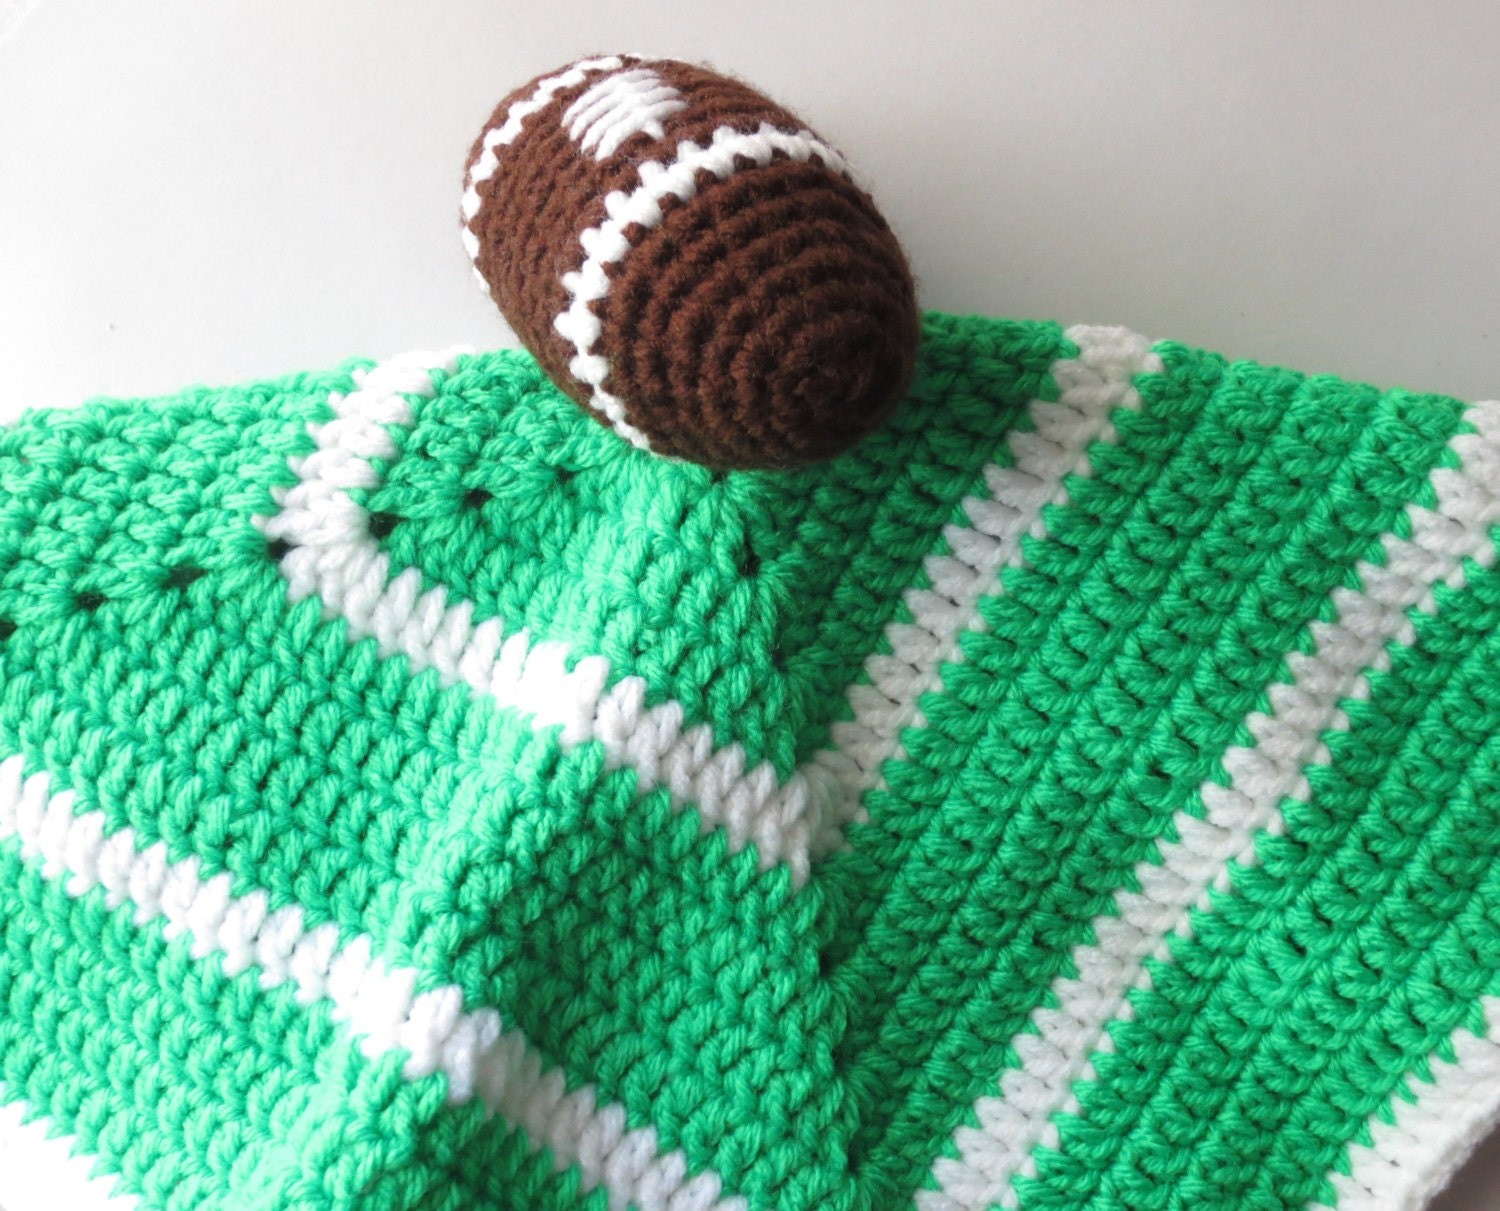 Knitting Pattern For Lovey Blanket : Football Security Blanket Crochet Security by ...